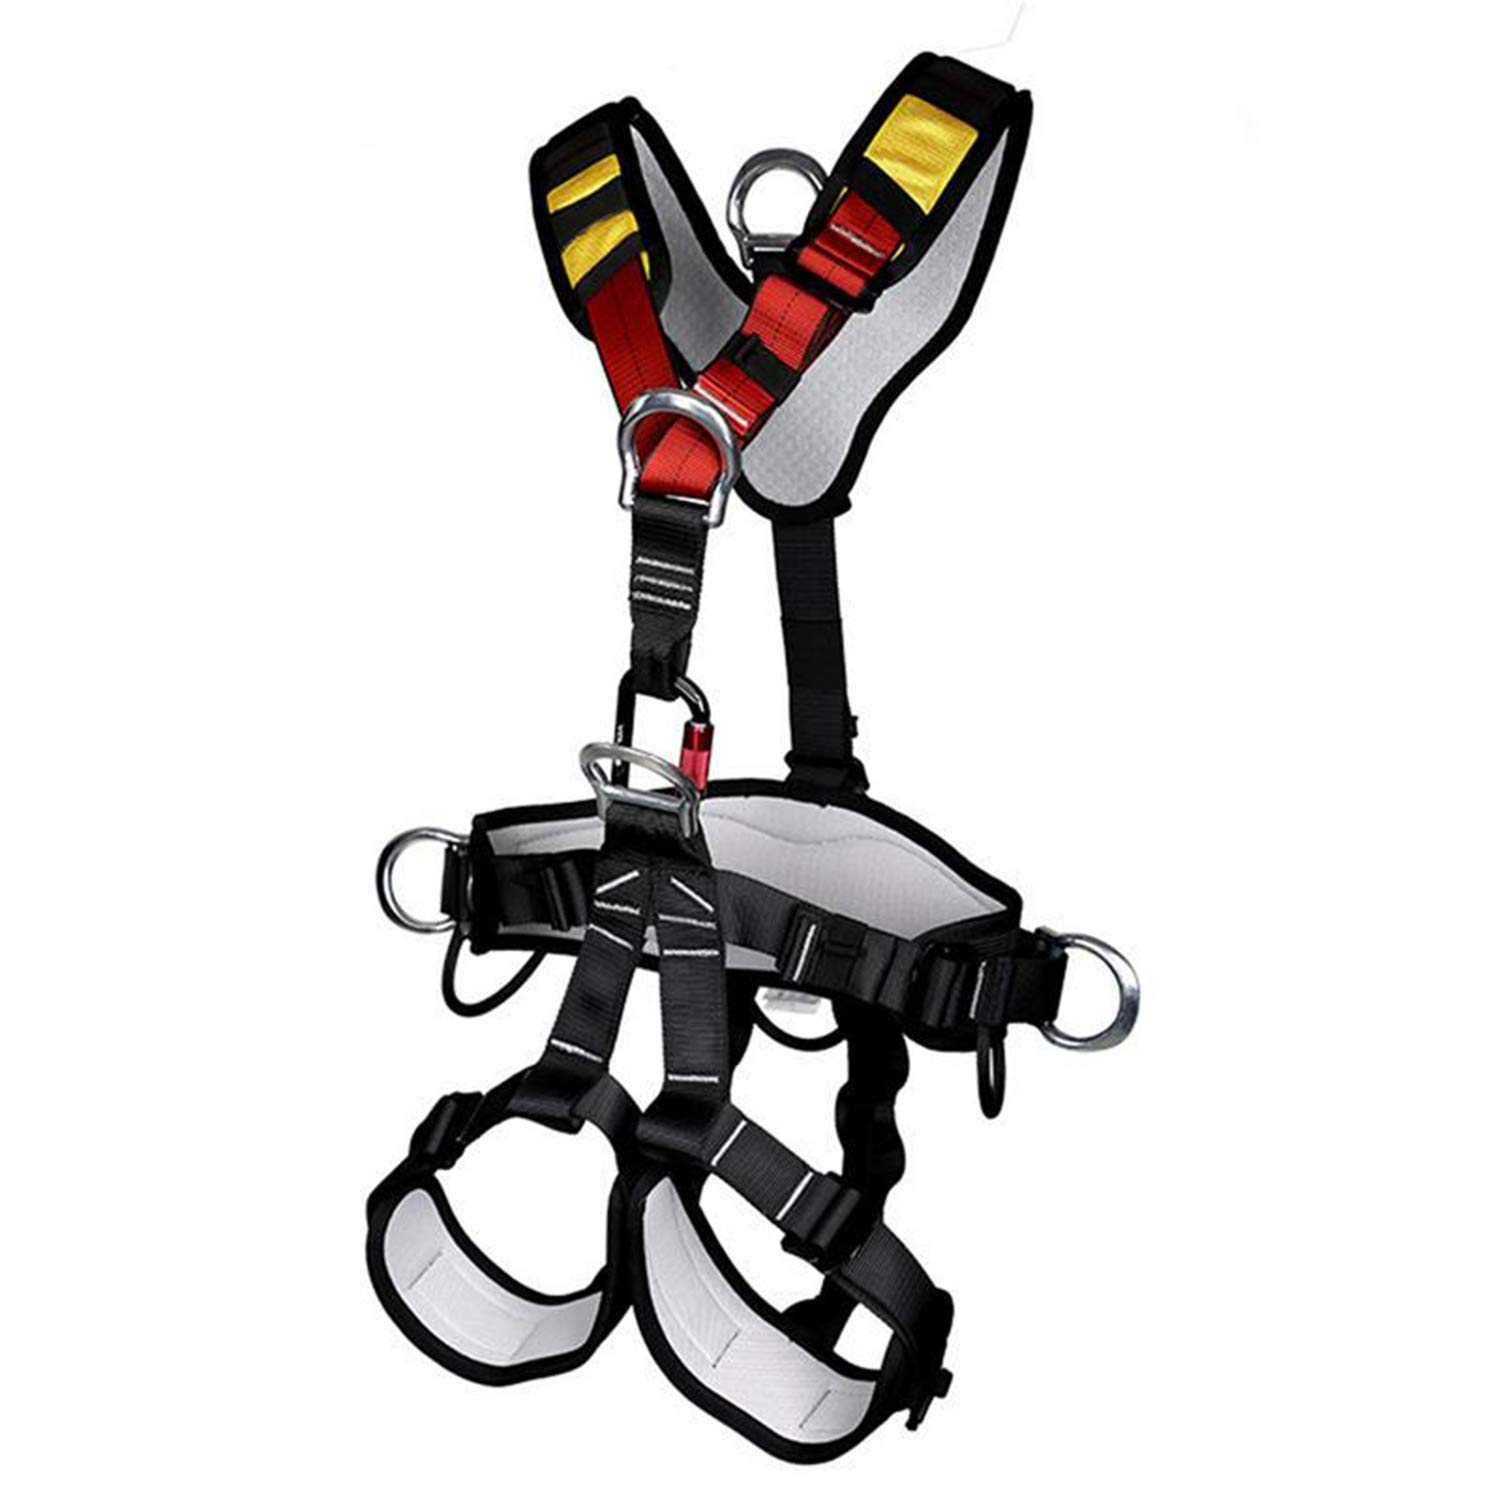 SODIAL Outdoor Climbing Rock Rappelling Mountaineering Accessories Body Wearing Seat Belt Sitting Waist Bust Protection by SODIAL (Image #2)